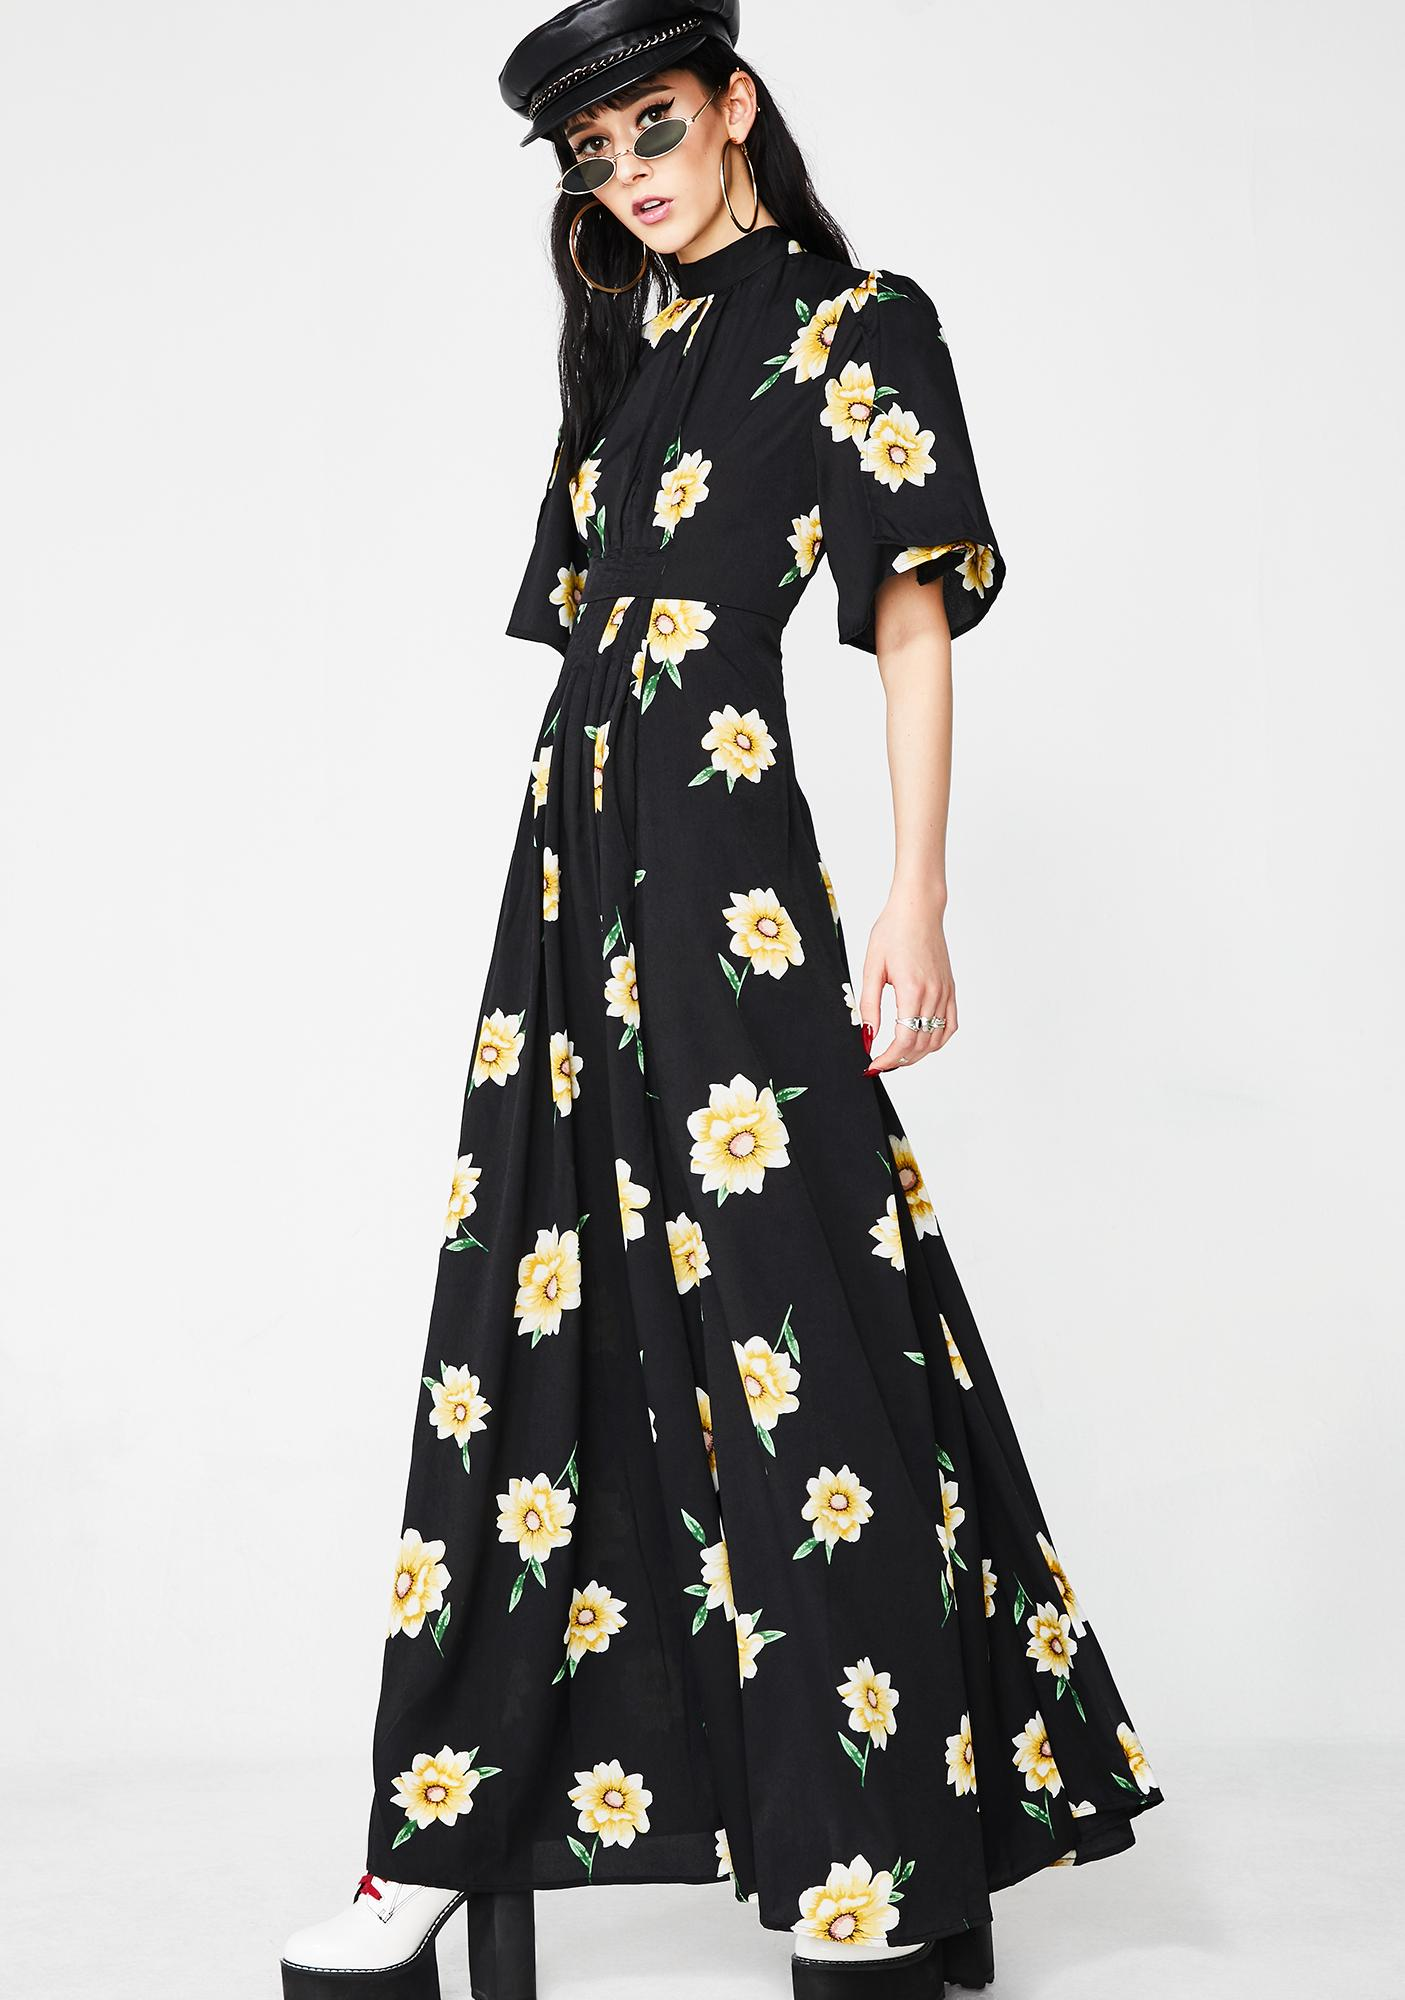 Say What Sunflower Dress